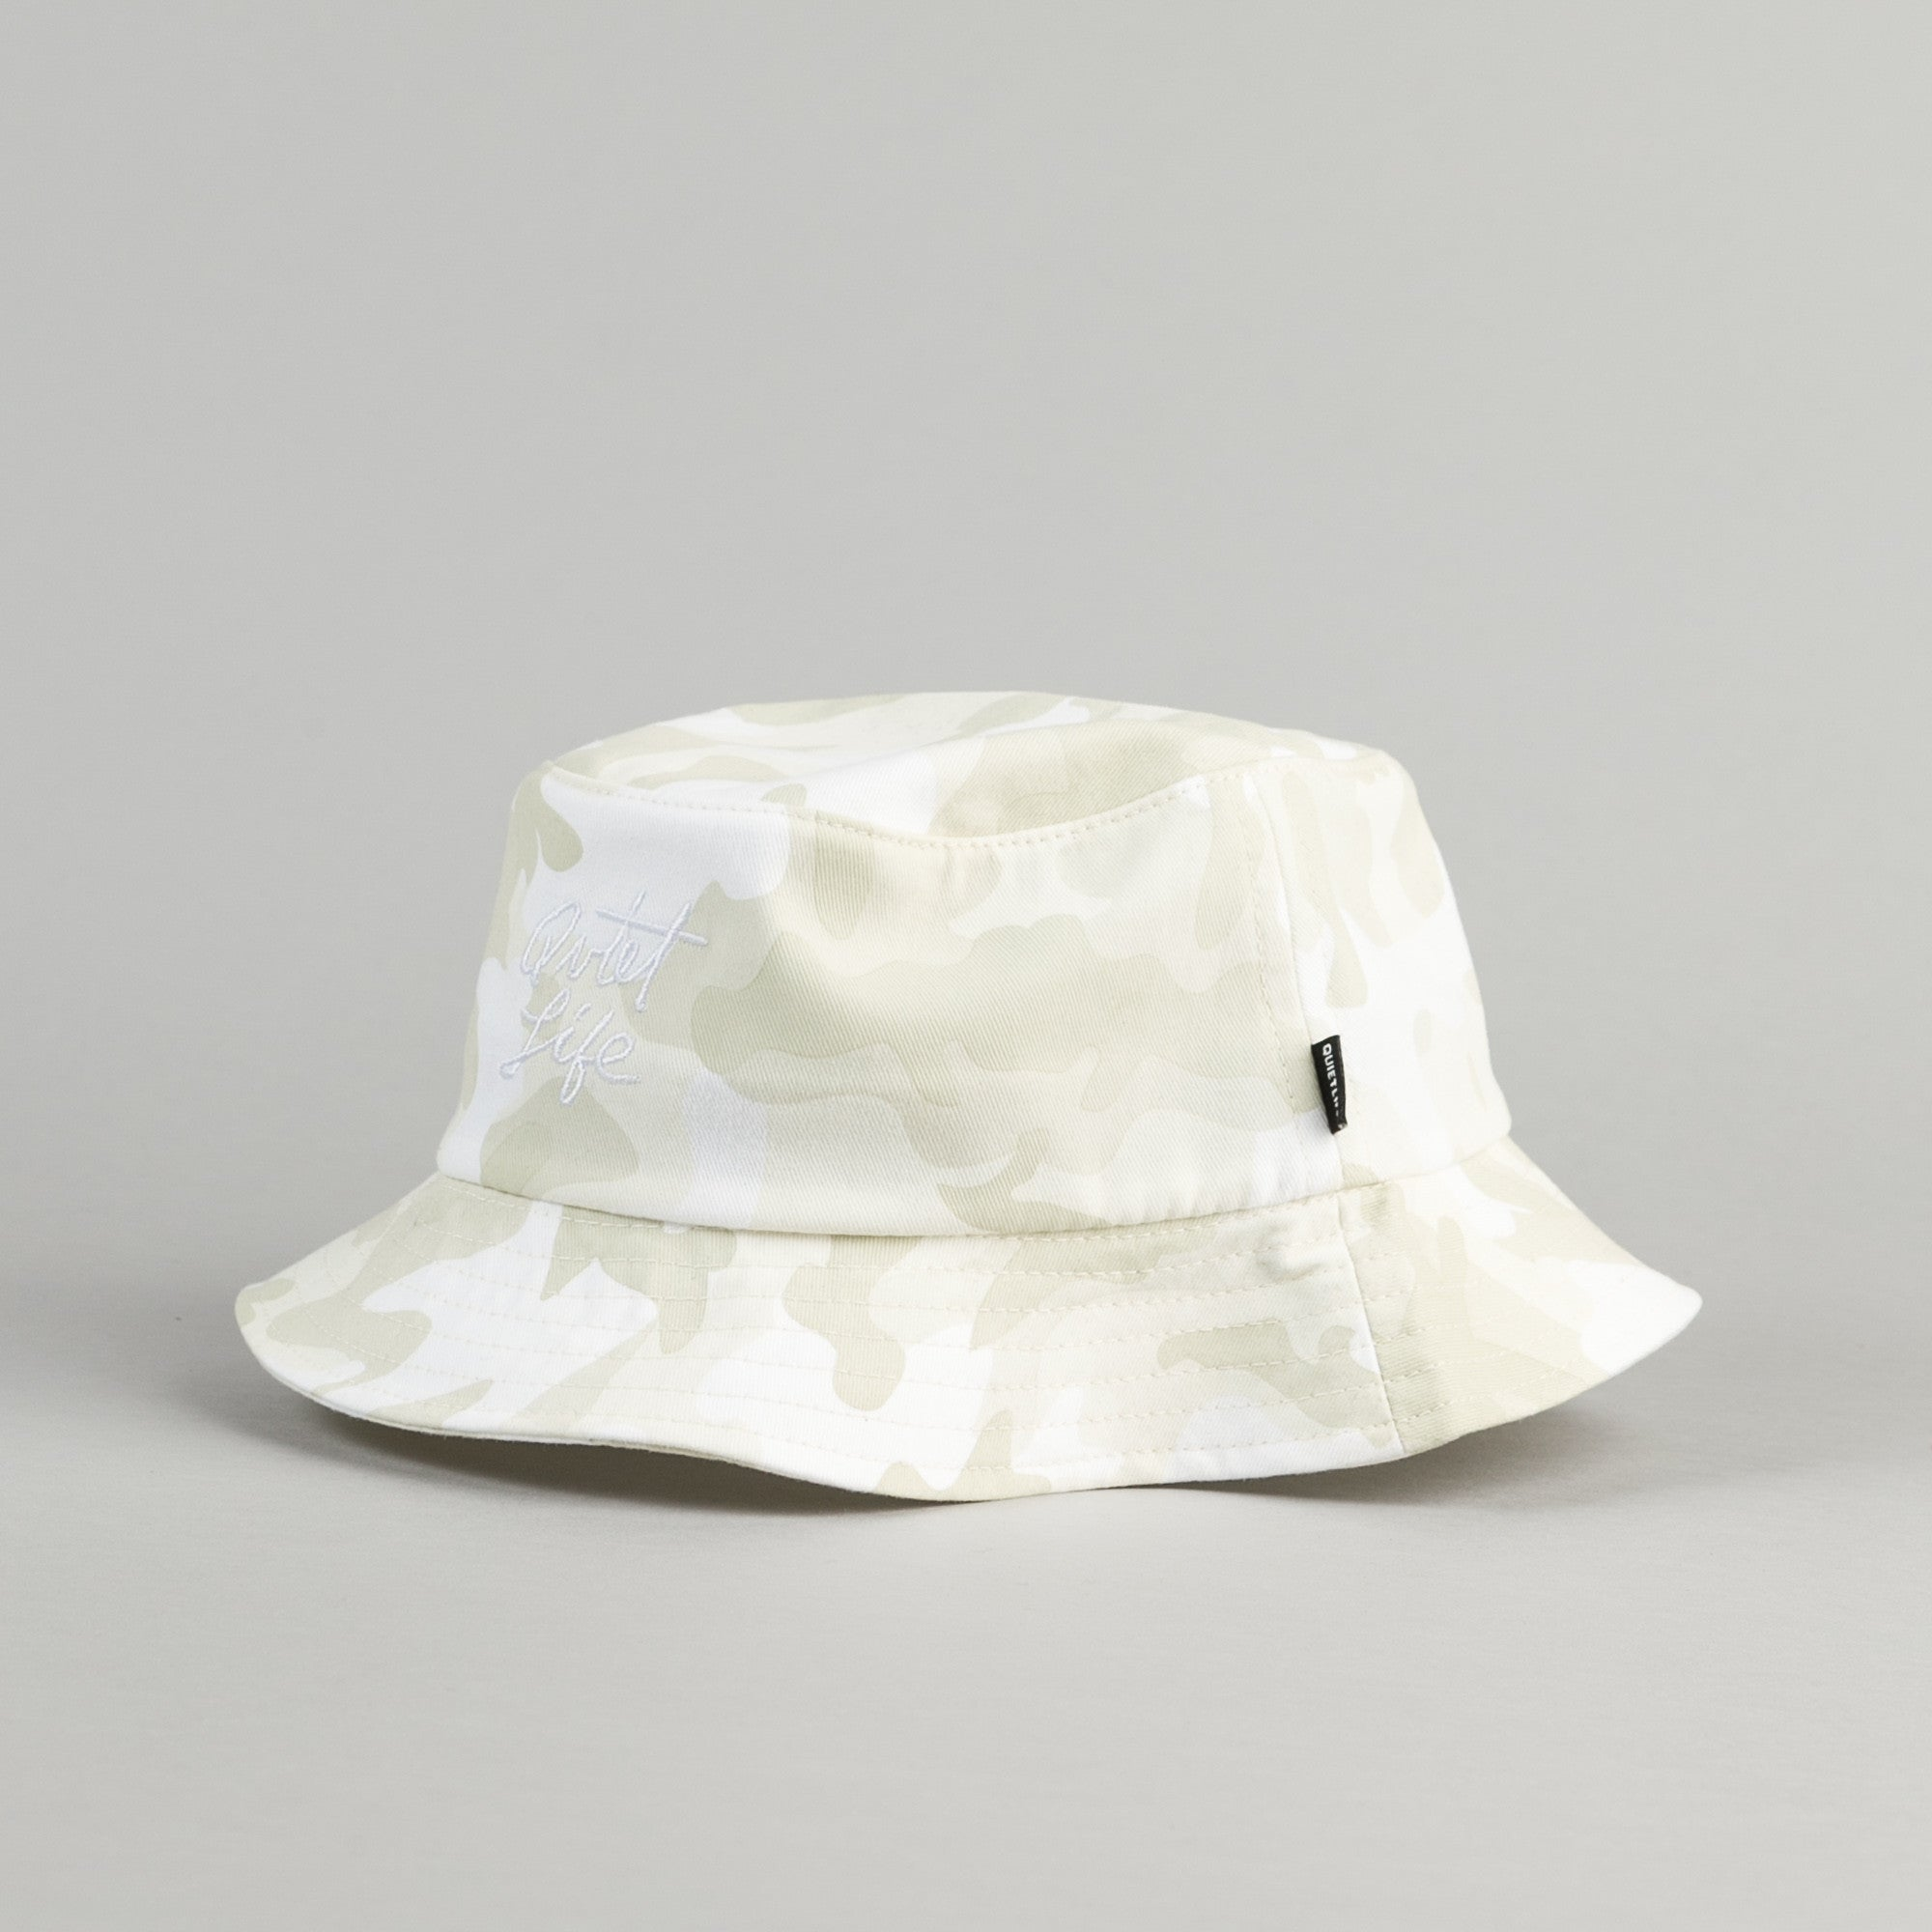 The Quiet Life Camo Bucket Hat - White Camo